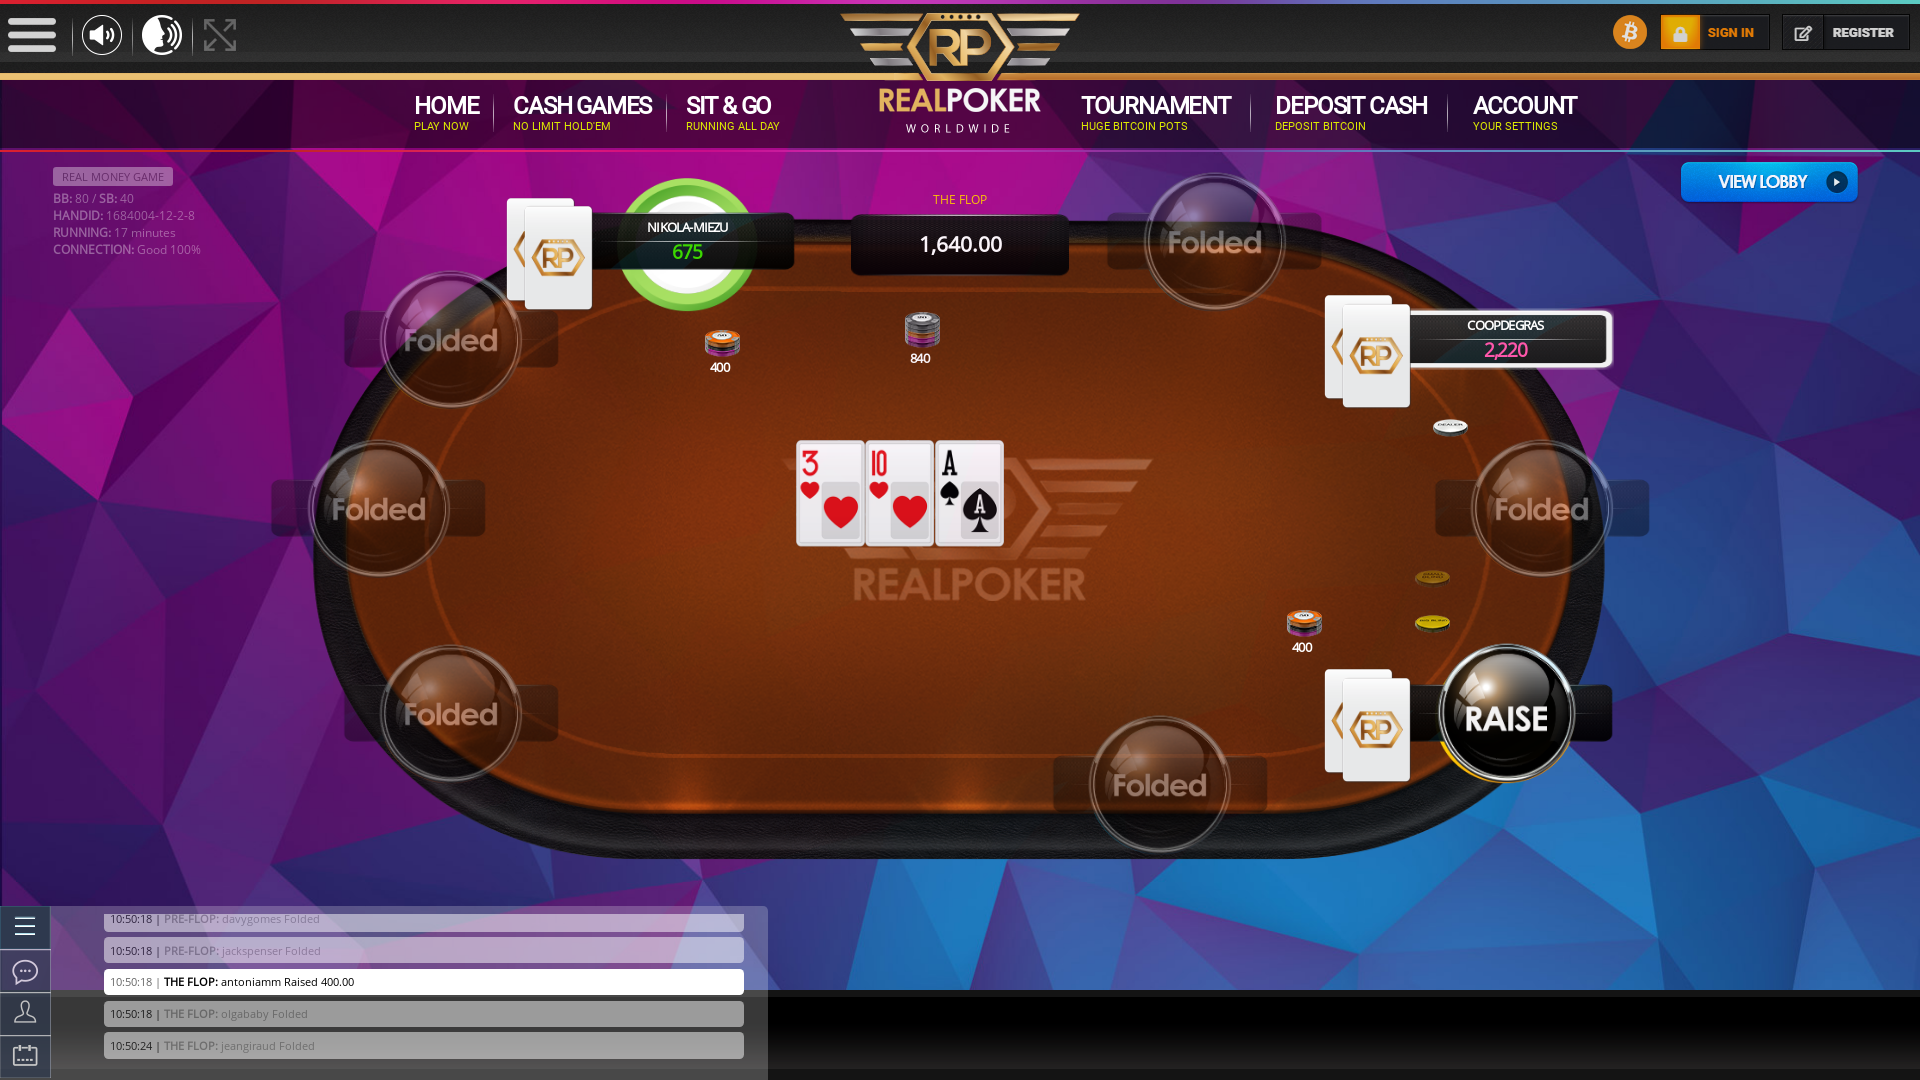 10 player poker in the 17th minute